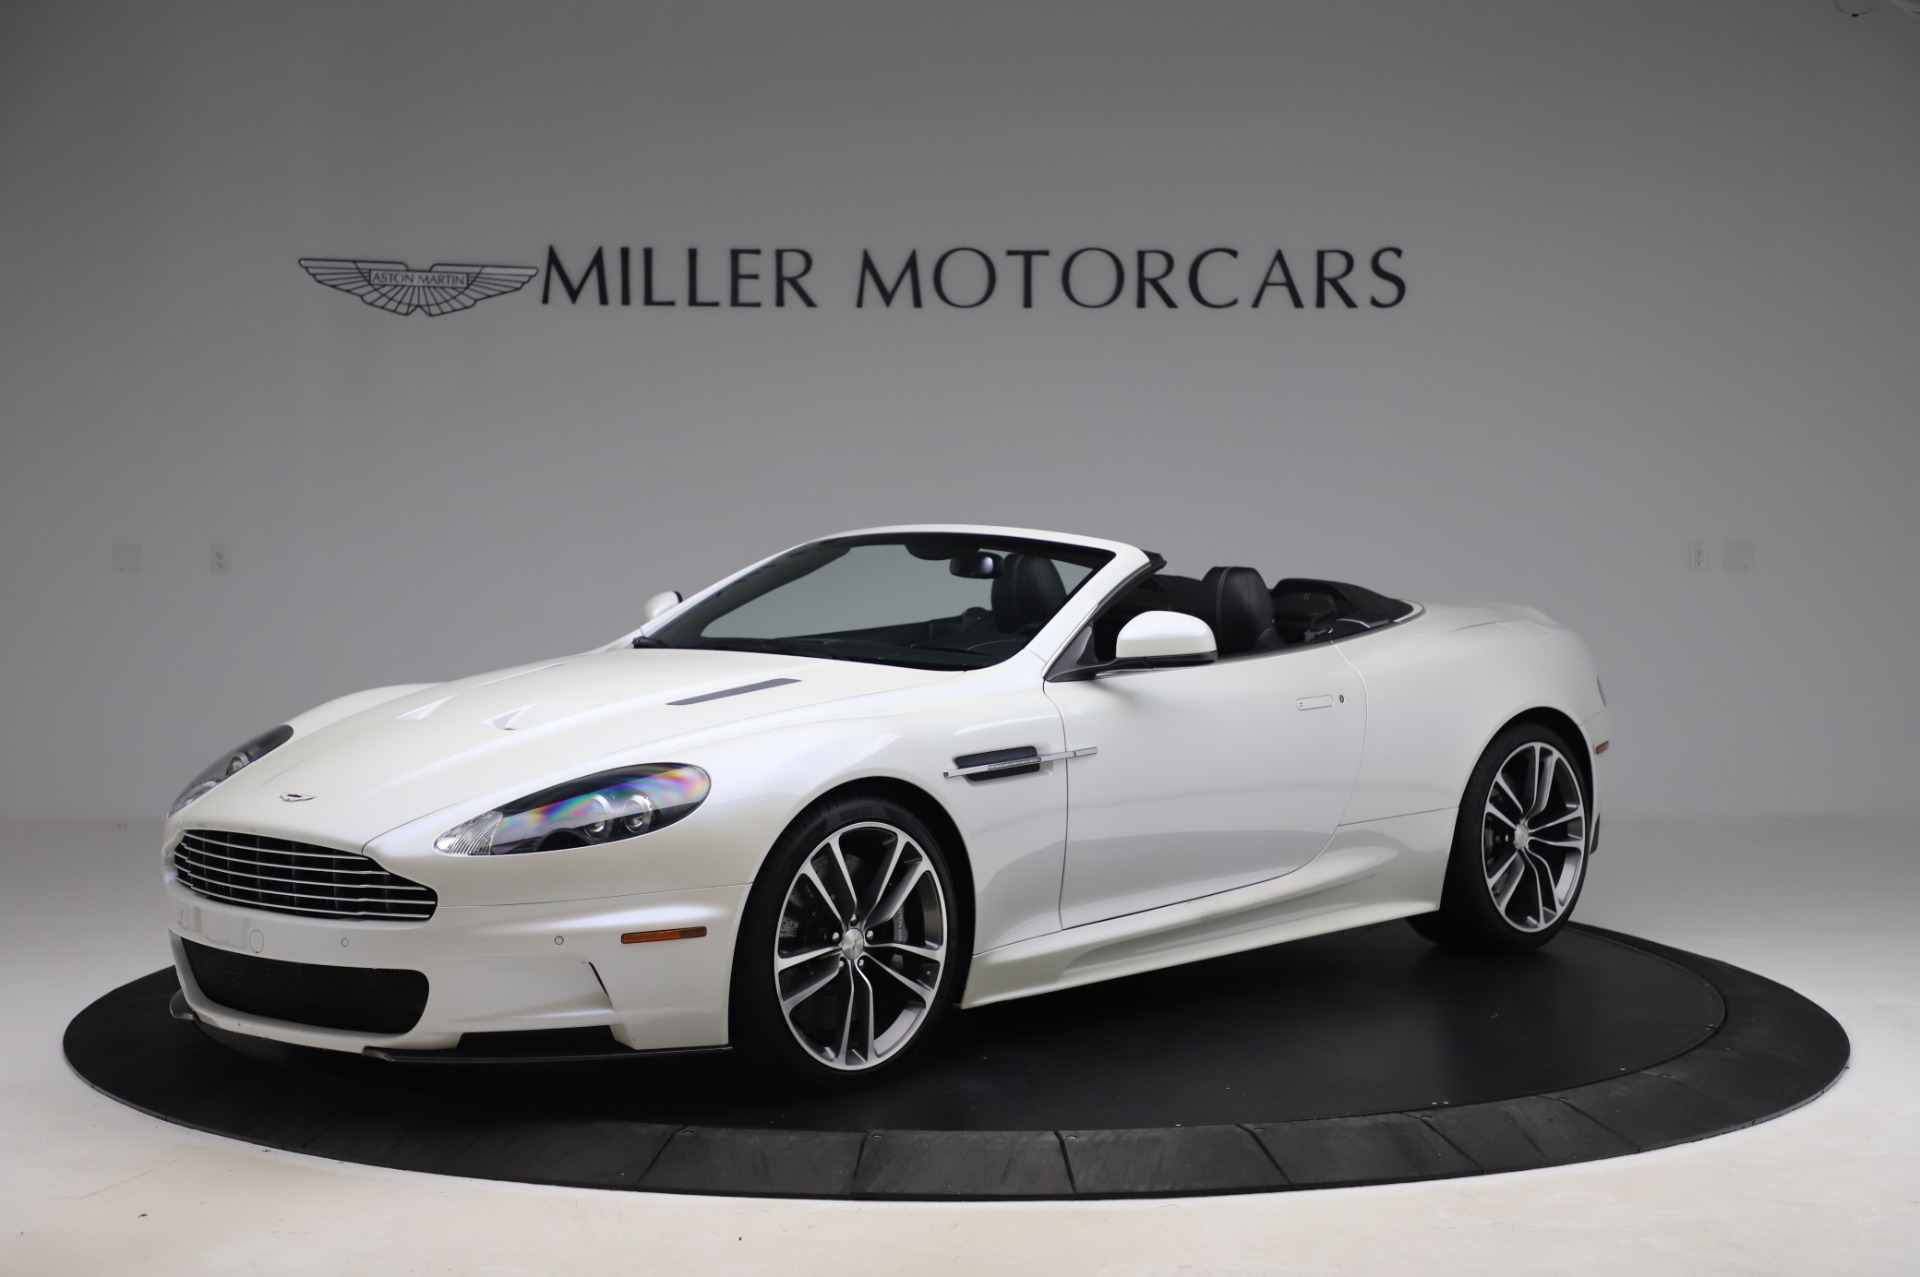 Used 2010 Aston Martin DBS Volante for sale $104,900 at Alfa Romeo of Westport in Westport CT 06880 1